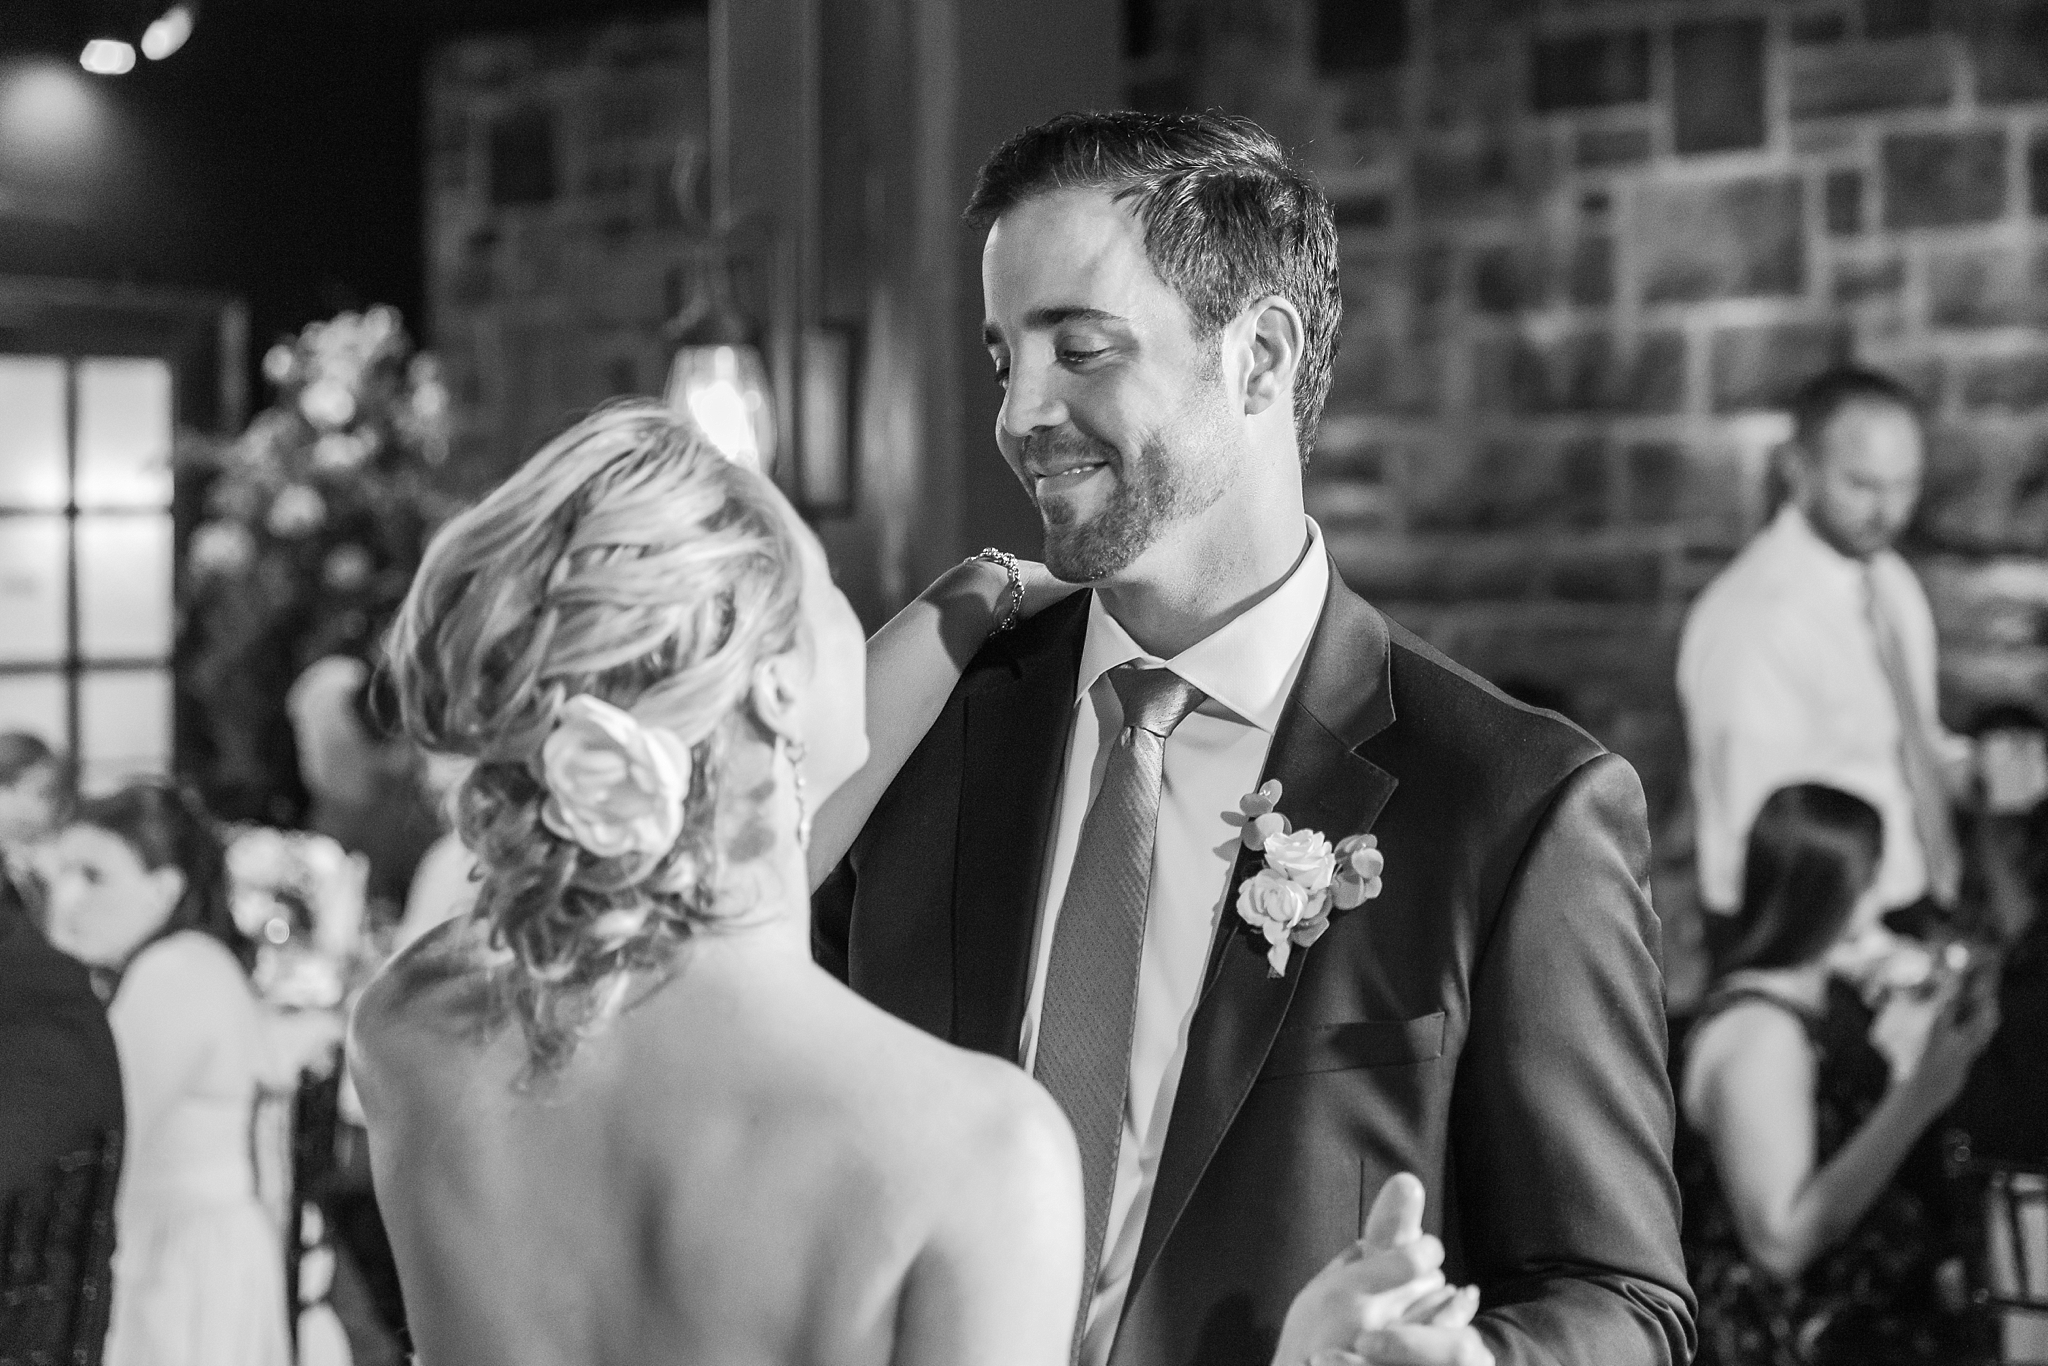 fun-candid-laid-back-wedding-photos-at-wellers-carriage-house-in-saline-michigan-and-at-the-eagle-crest-golf-resort-by-courtney-carolyn-photography_0093.jpg